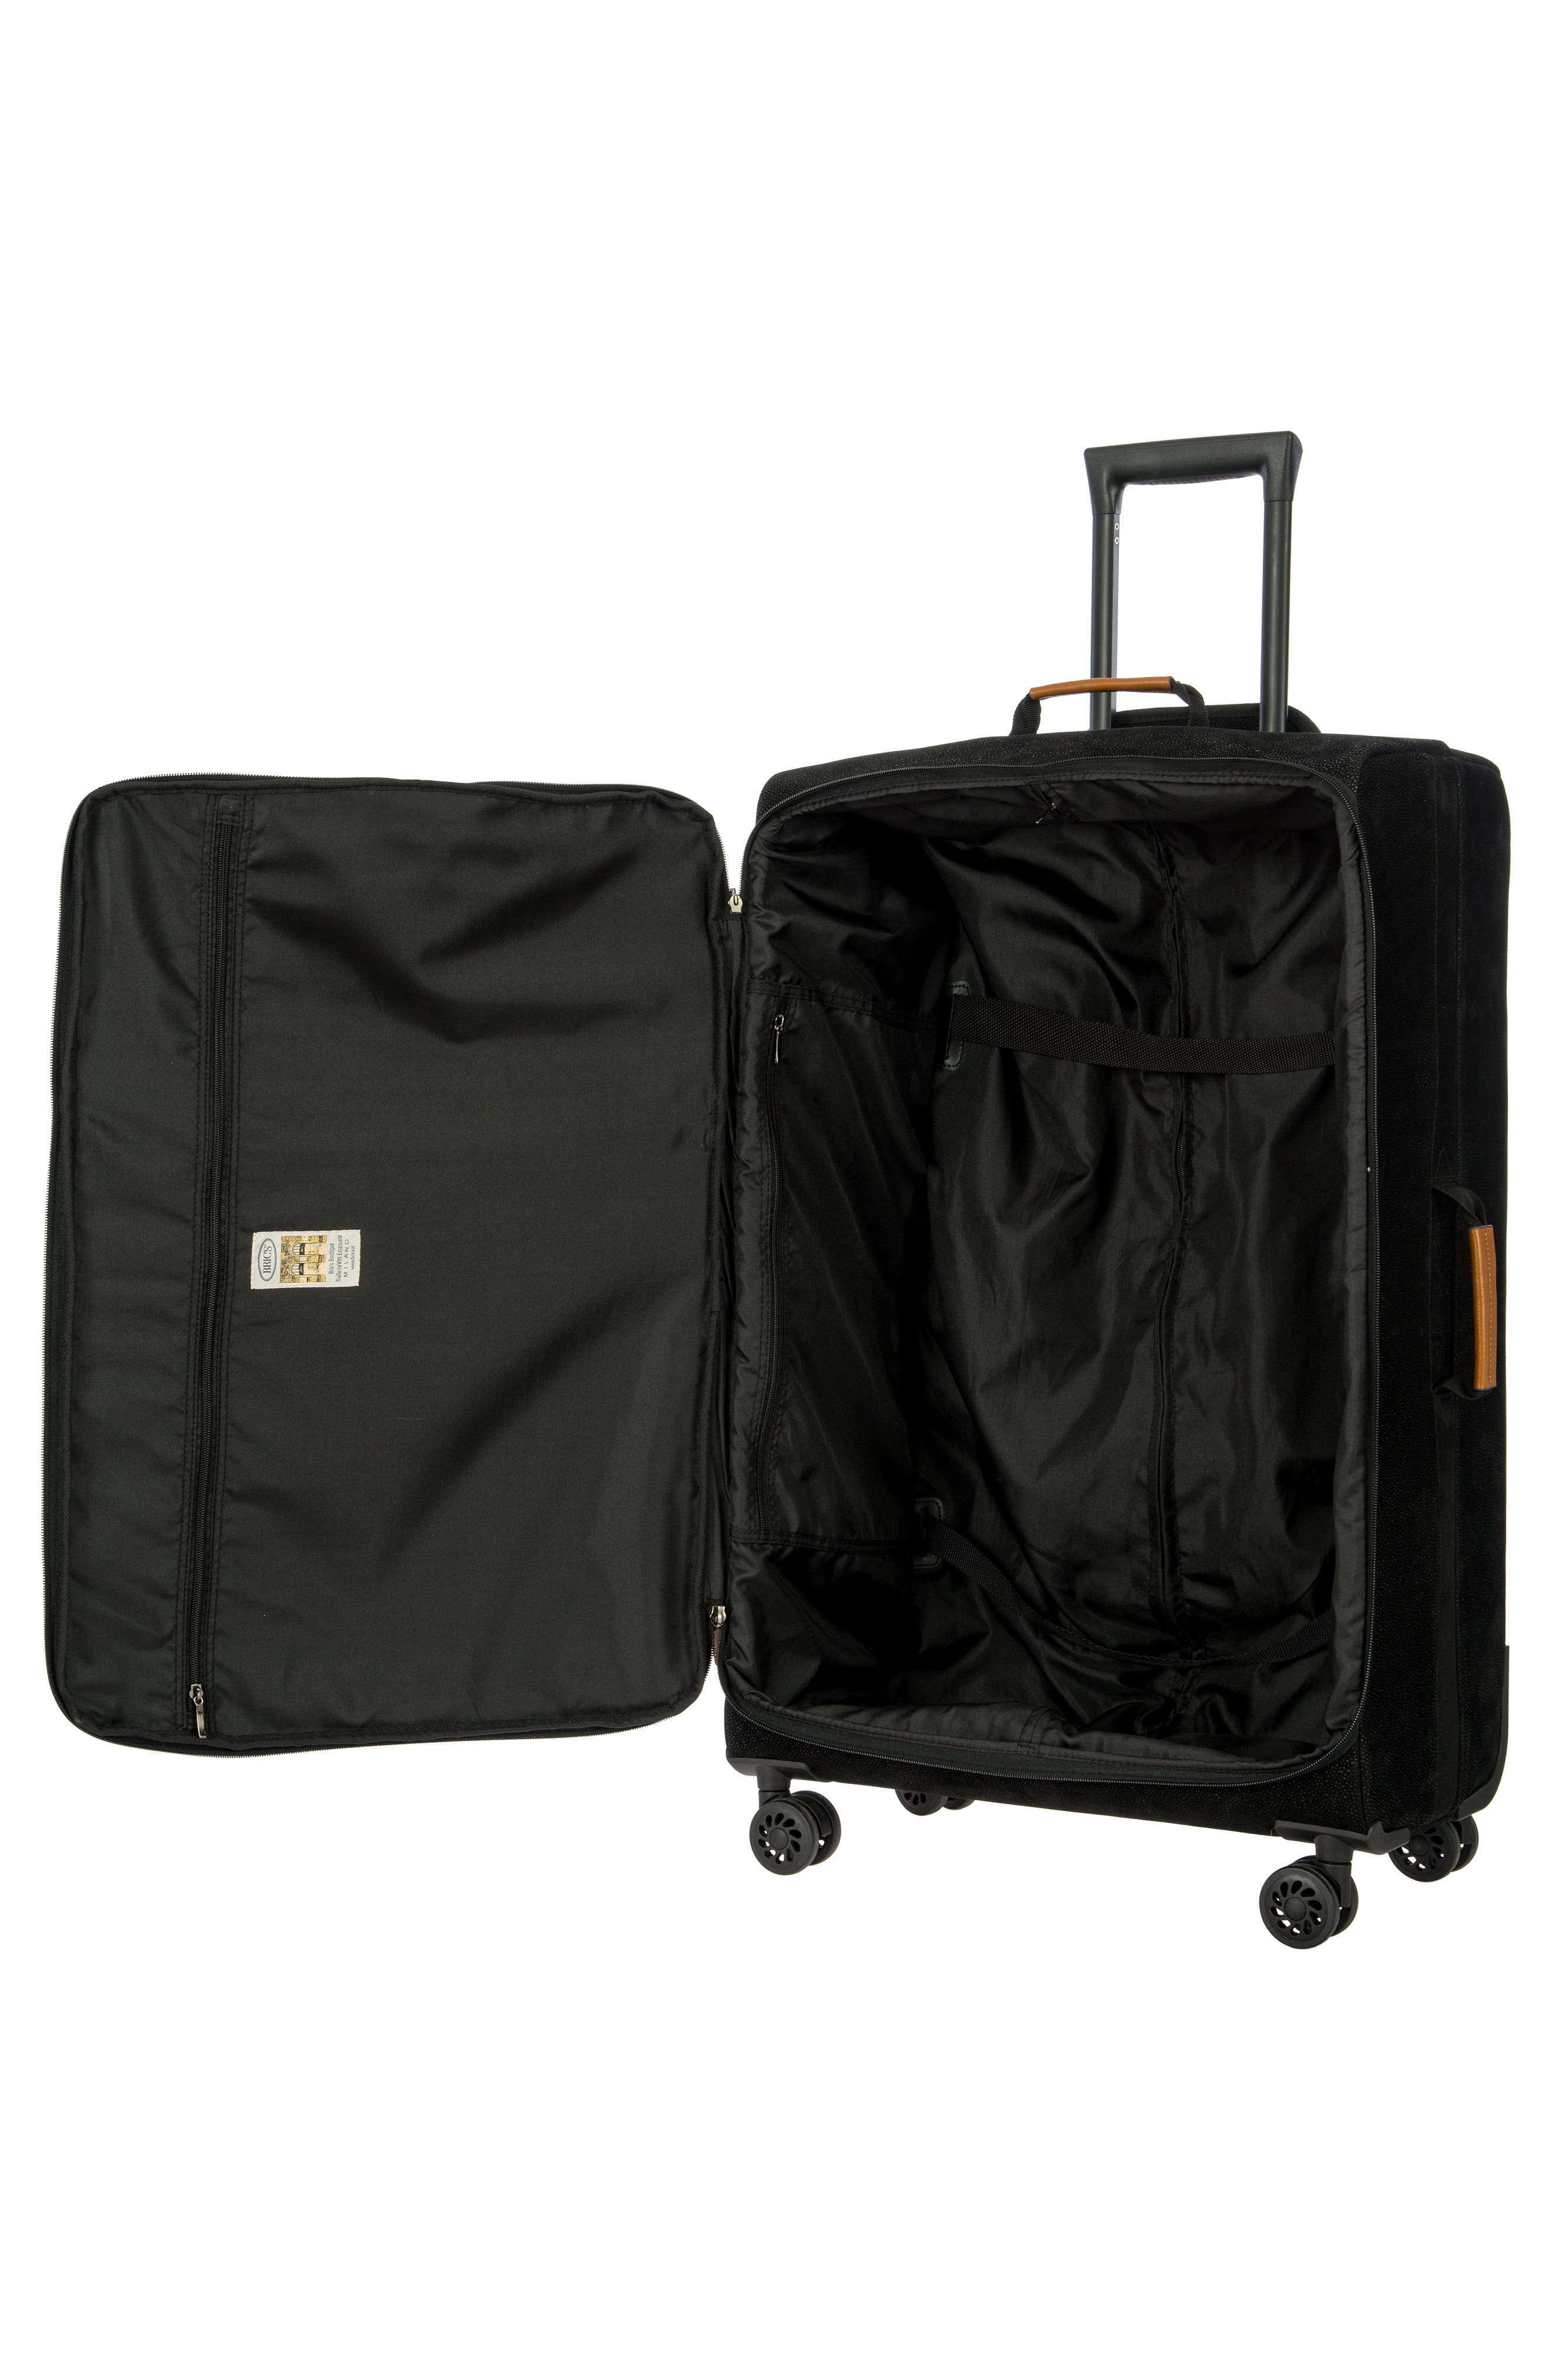 LIFE Collection 30-Inch Wheeled Suitcase,                             Alternate thumbnail 2, color,                             007